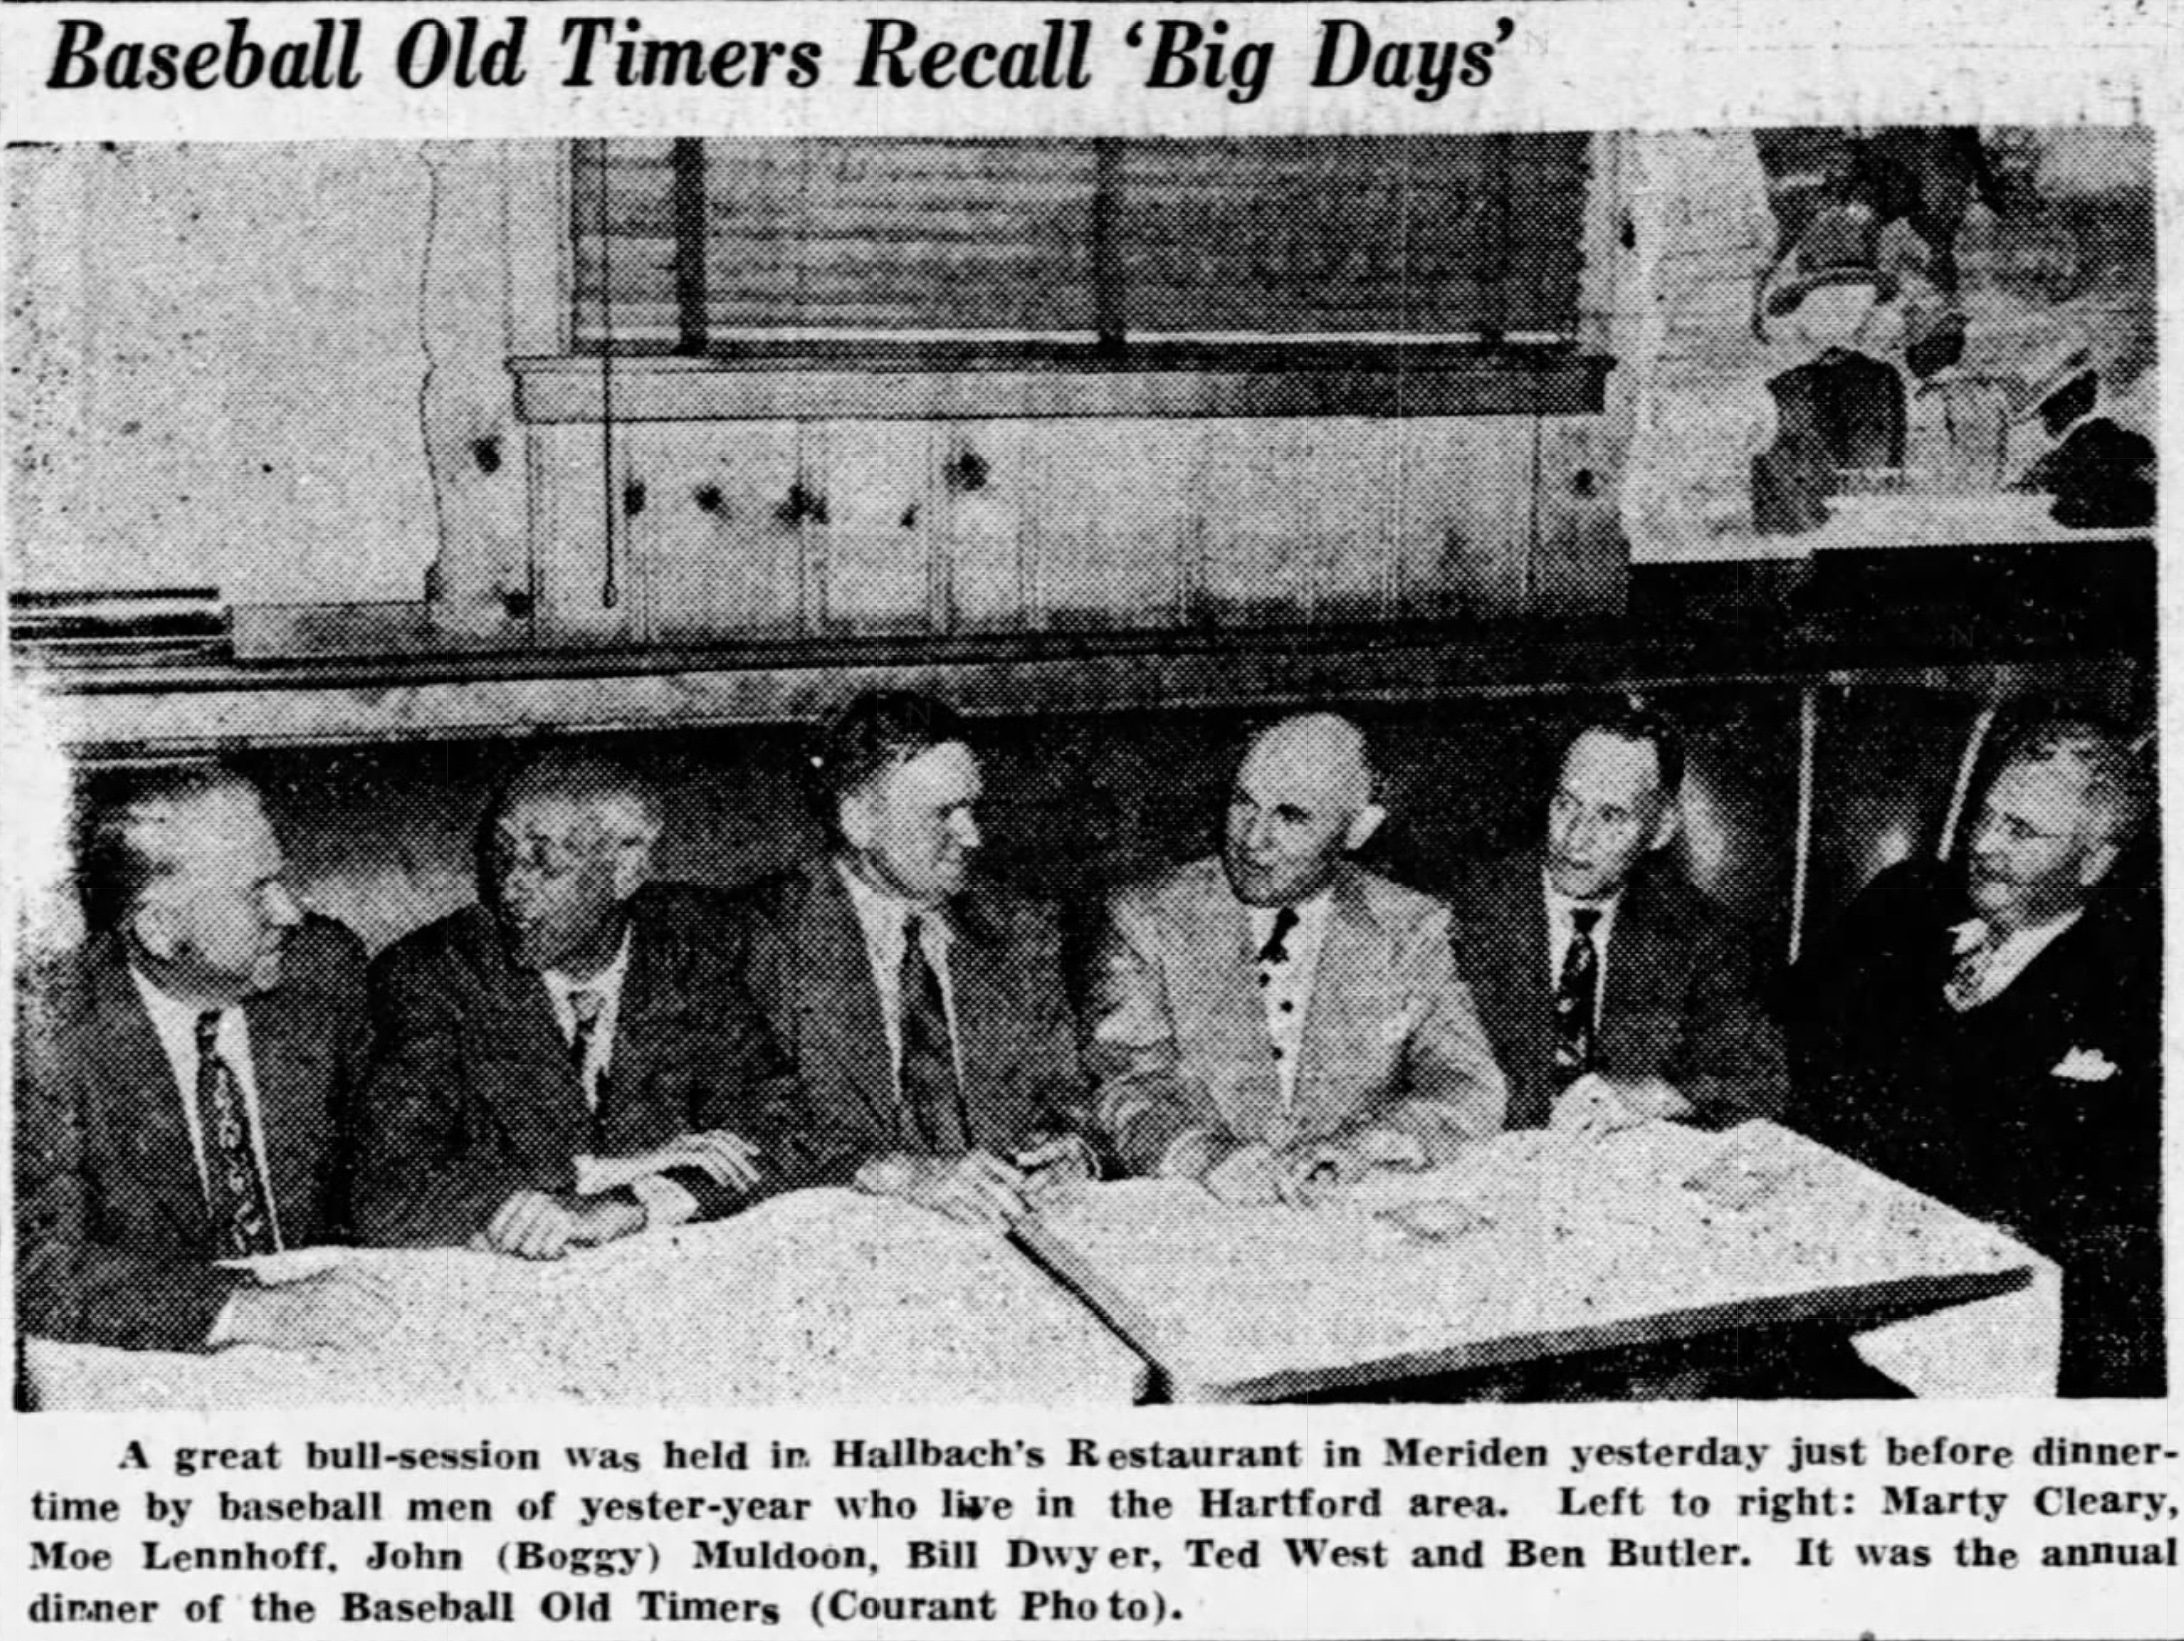 Old Timers Recall 'Big Days', 1951